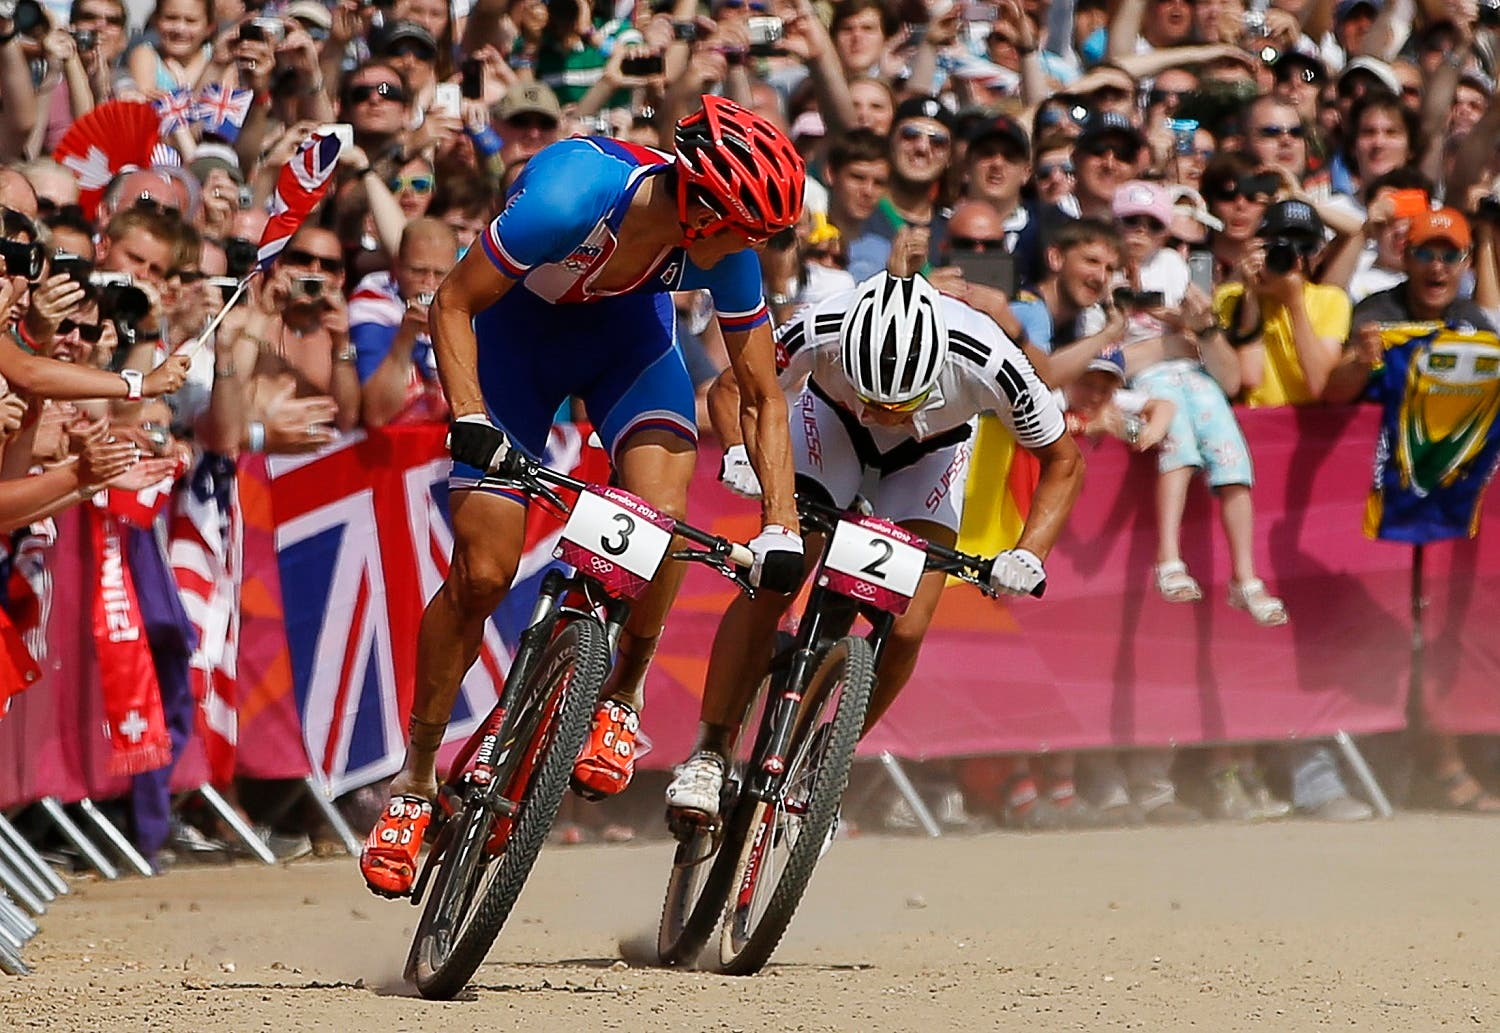 Czech Republic's Jaroslav Kulhavy (L) glances back at Switzerland's Nino Schurter as they approach the finish line during the men's cross-country mountain bike event at Hadleigh Farm at the London 2012 Olympic Games August 12, 2012. Kulhavy won the gold medal in the race, with Schurter taking the silver. (Reuters)